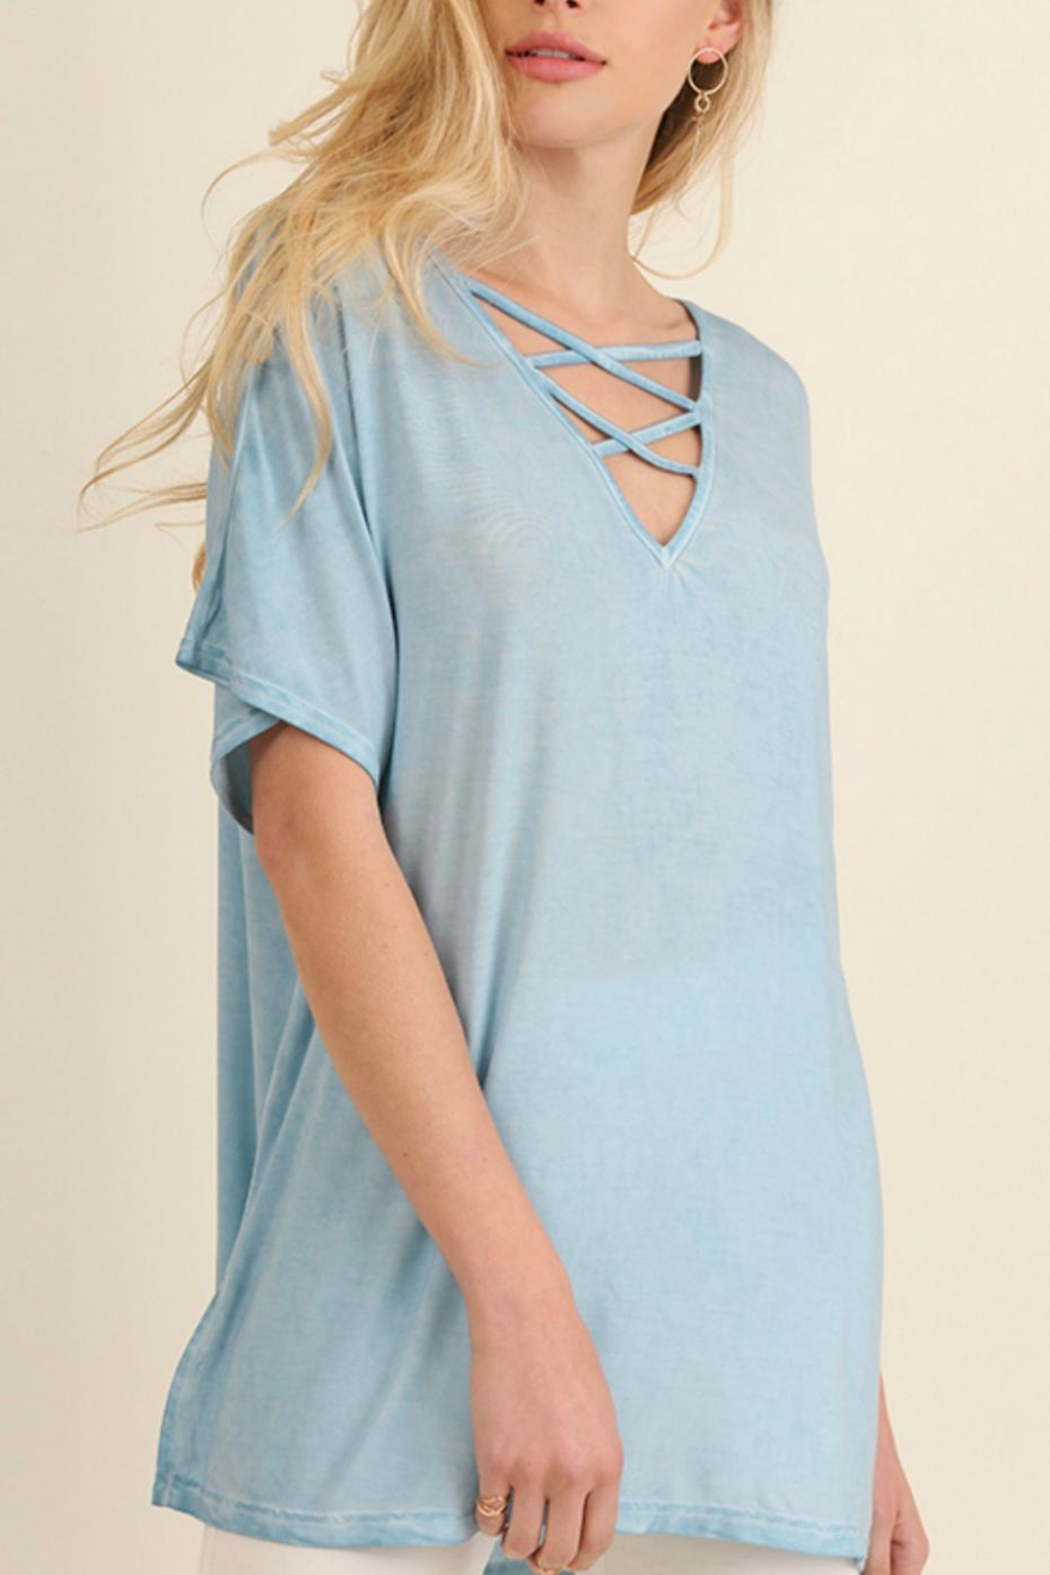 Umgee USA Washed Crisscross Top - Front Cropped Image